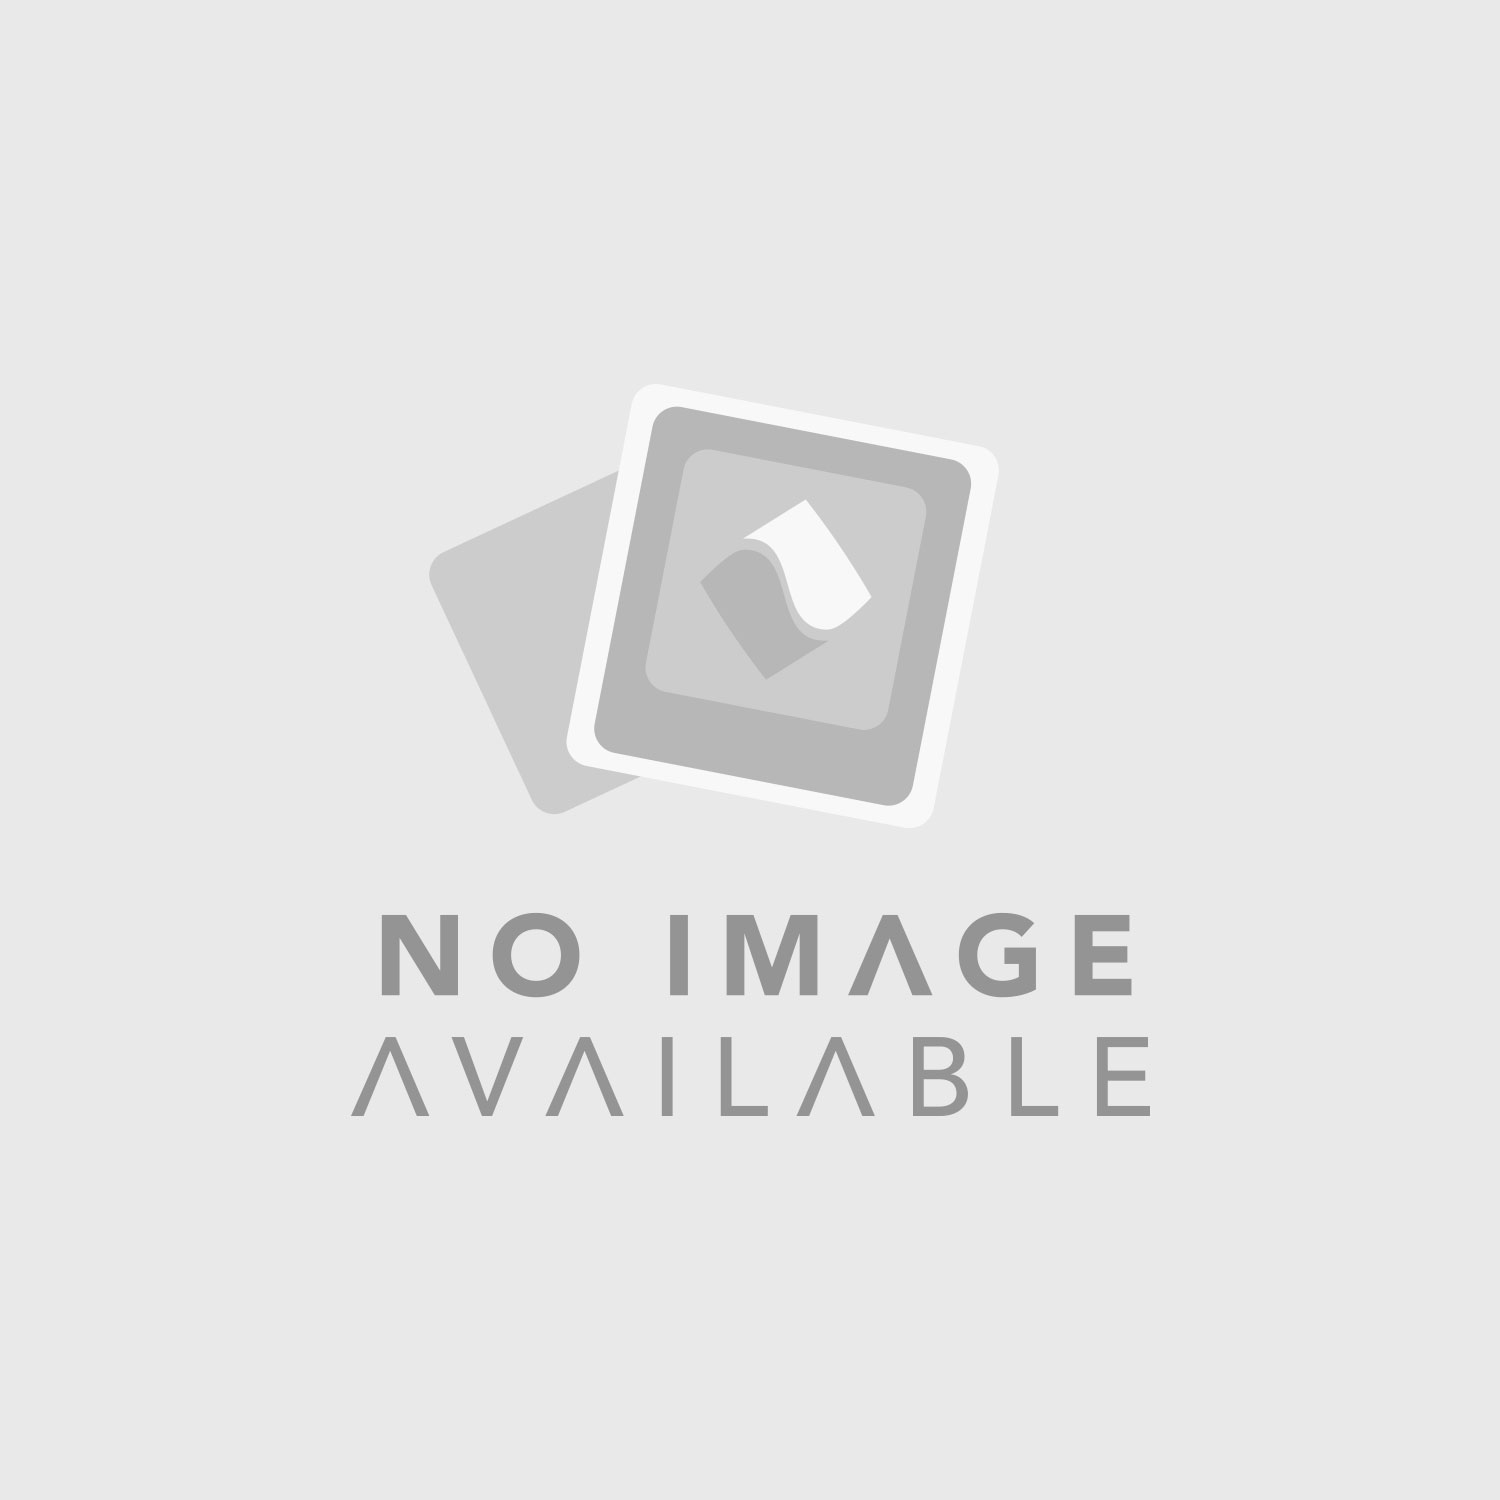 Avid Pro Tools | Ultimate Audio & Music Creation Software 1-Year Subscription (Download)